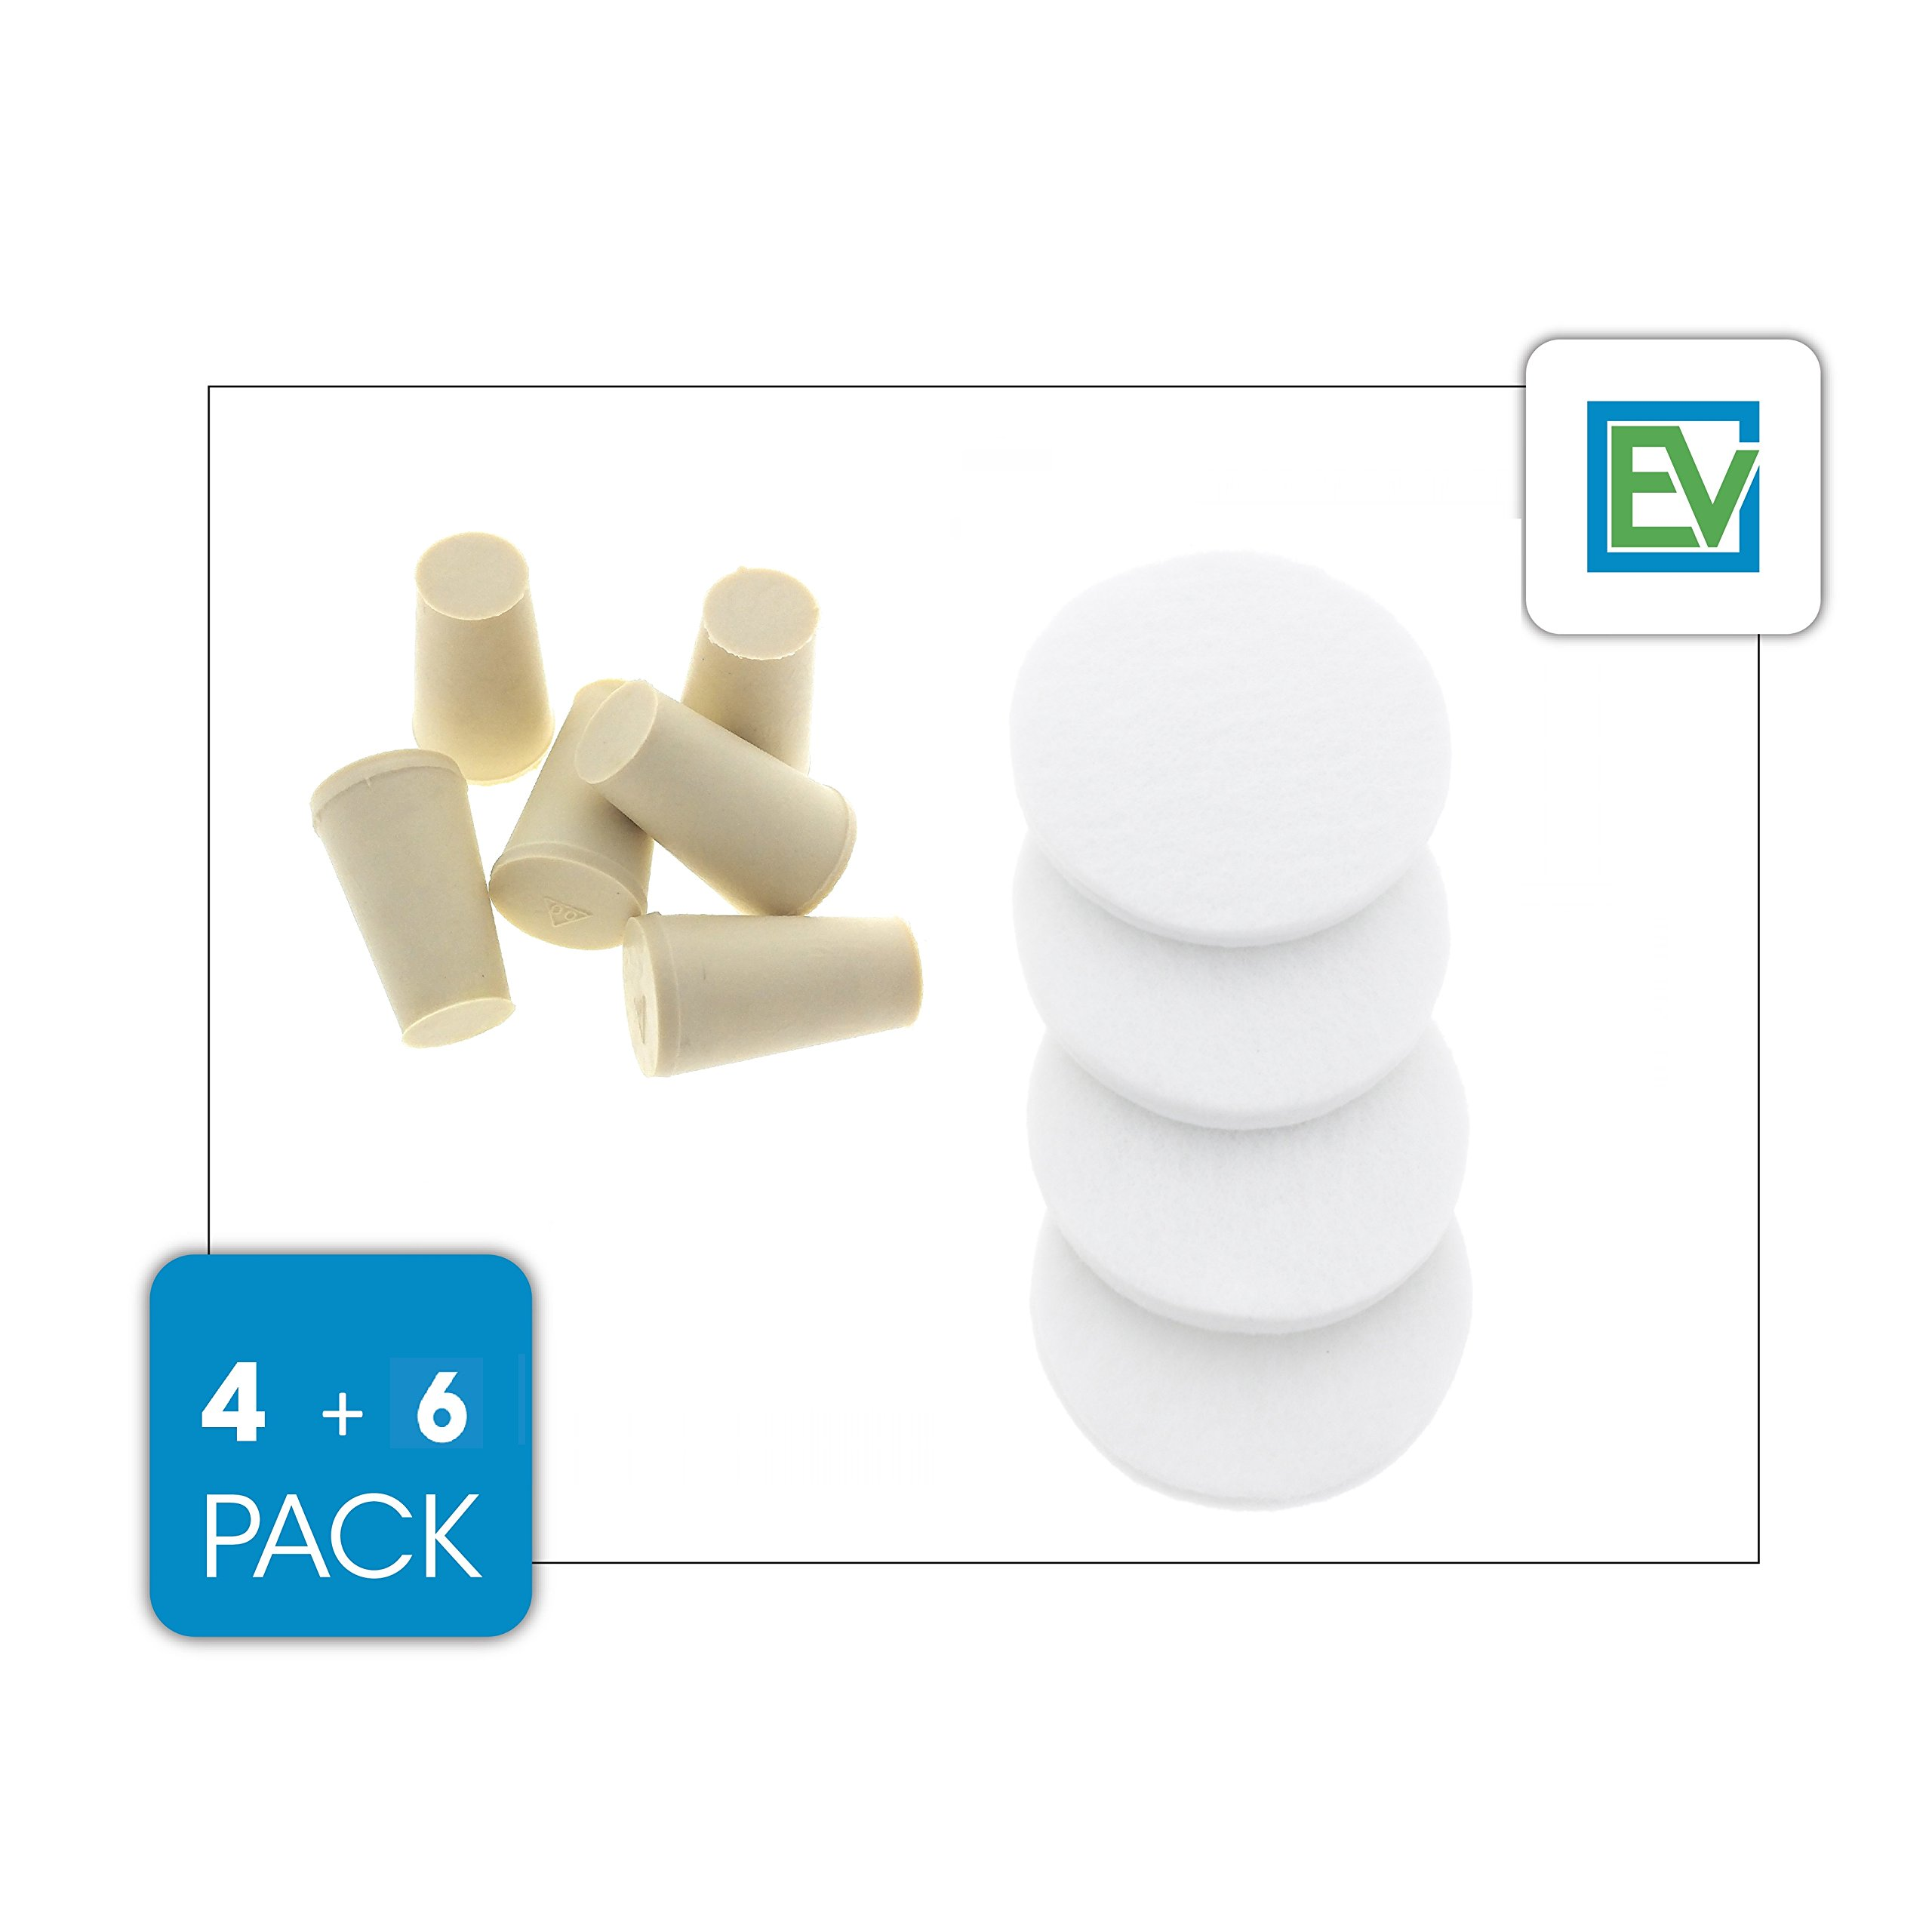 Replacement Stoppers (6 Pack) & Filters (4 Pack) Combo Pack For Toddy Cold Brew Systems, by Essential Values